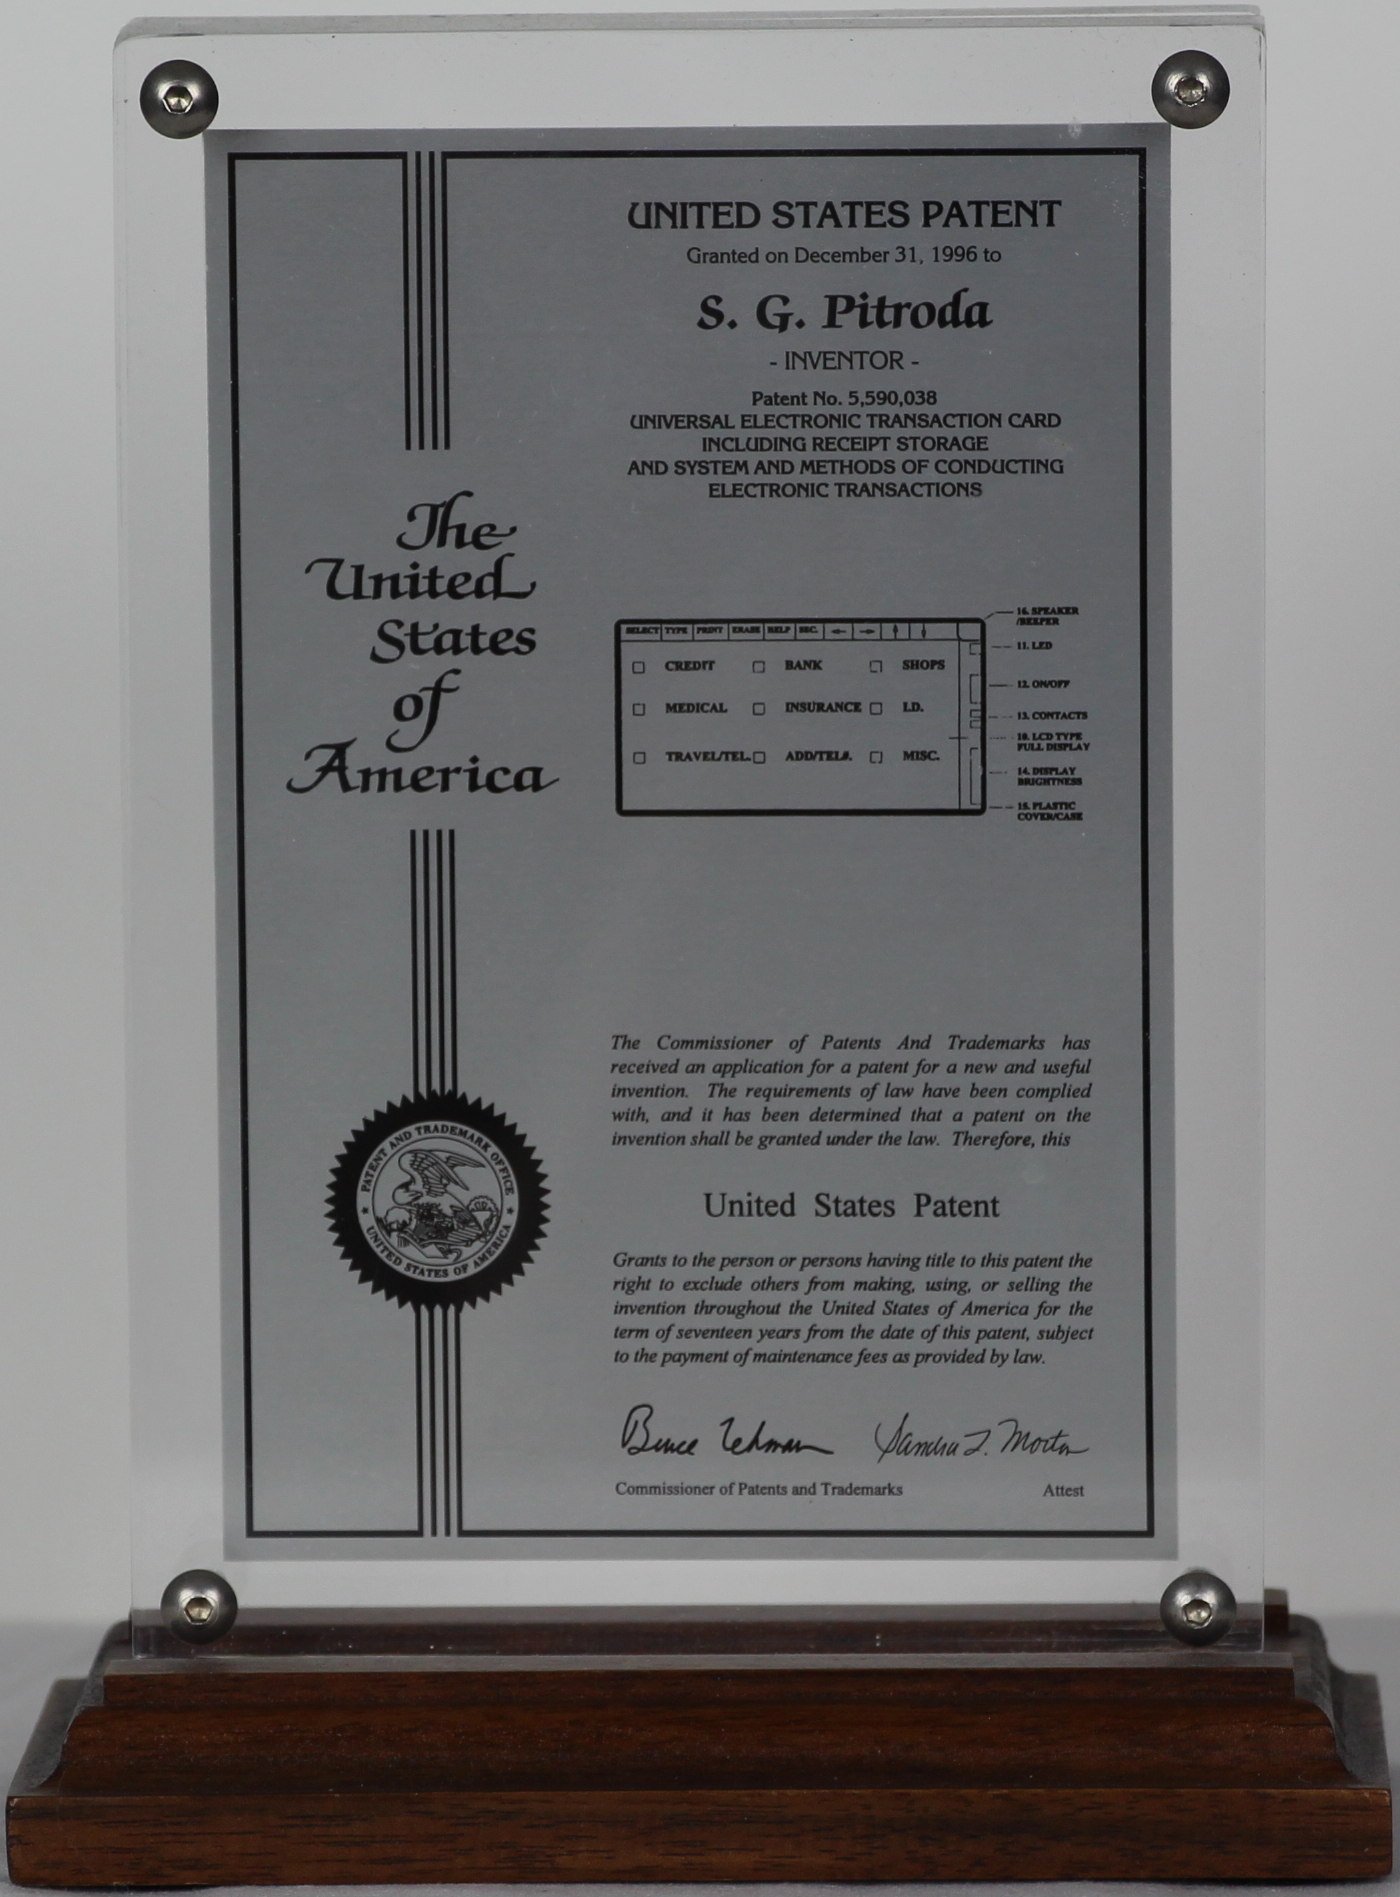 United States Patent Award 5,590,038, Universal Electronic Transaction Card, 1996